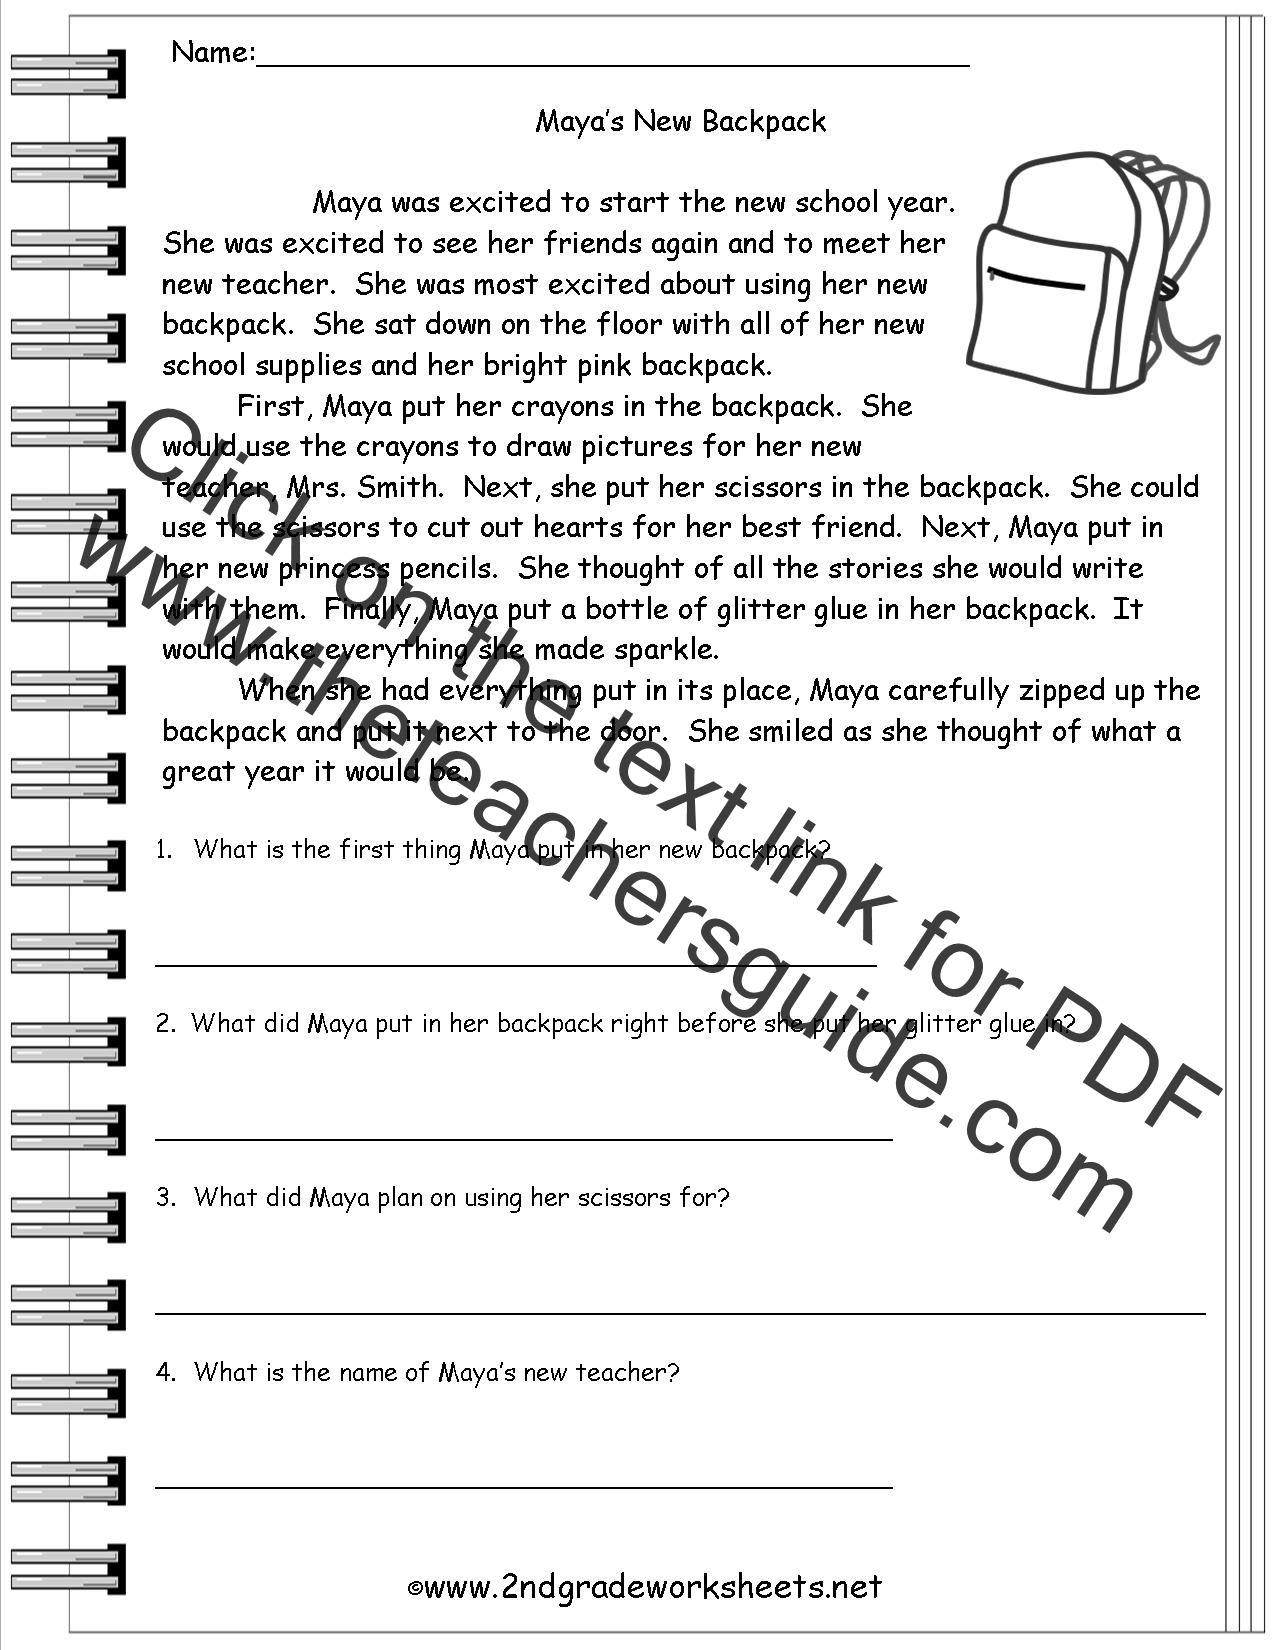 Worksheet Second Grade Reading Sheets reading worksheeets literature worksheets